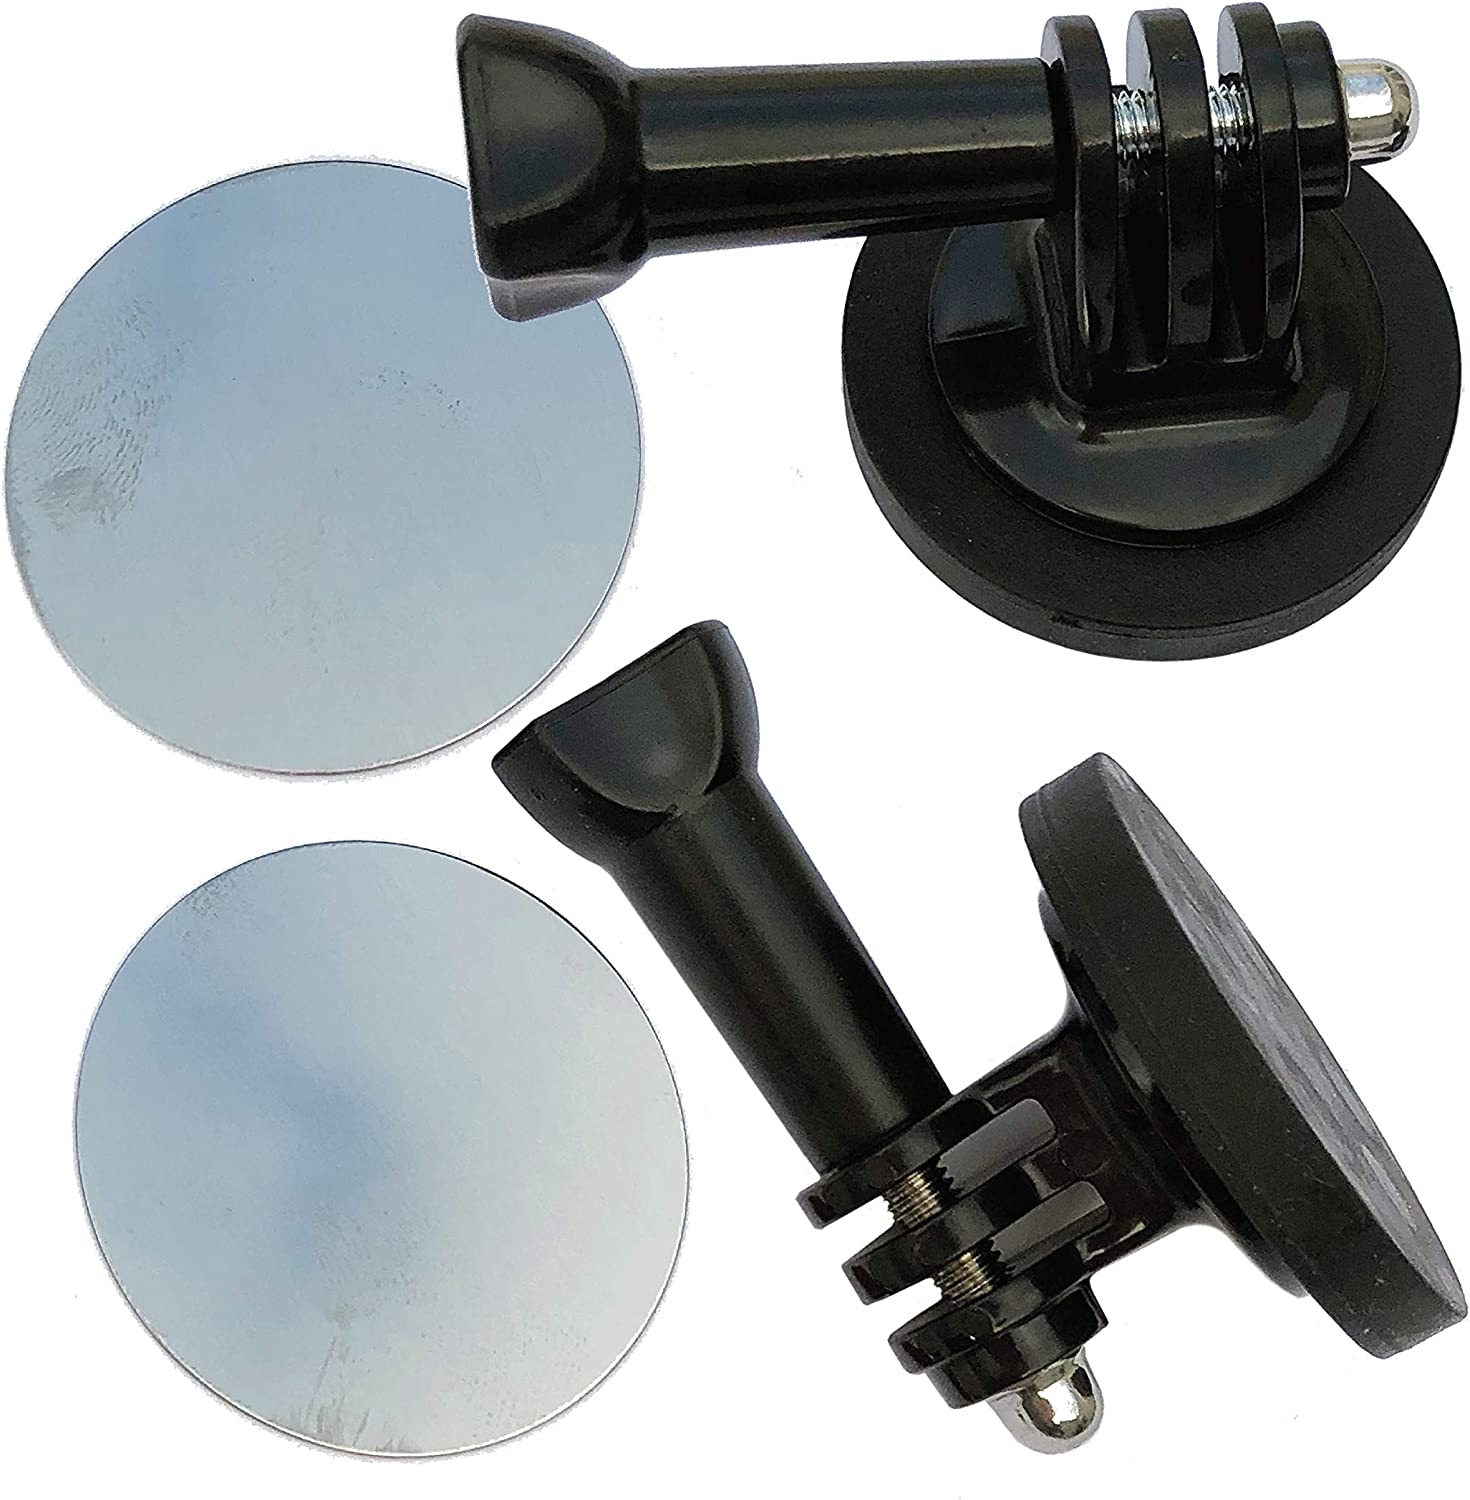 2-Pack FREAKMOUNT Freaky-Strong Rubber-Coated Magnetic Gopro Action Camera Mount w/Thumb Screws & Stick-On Metal Disc/Windshield Mount Too!